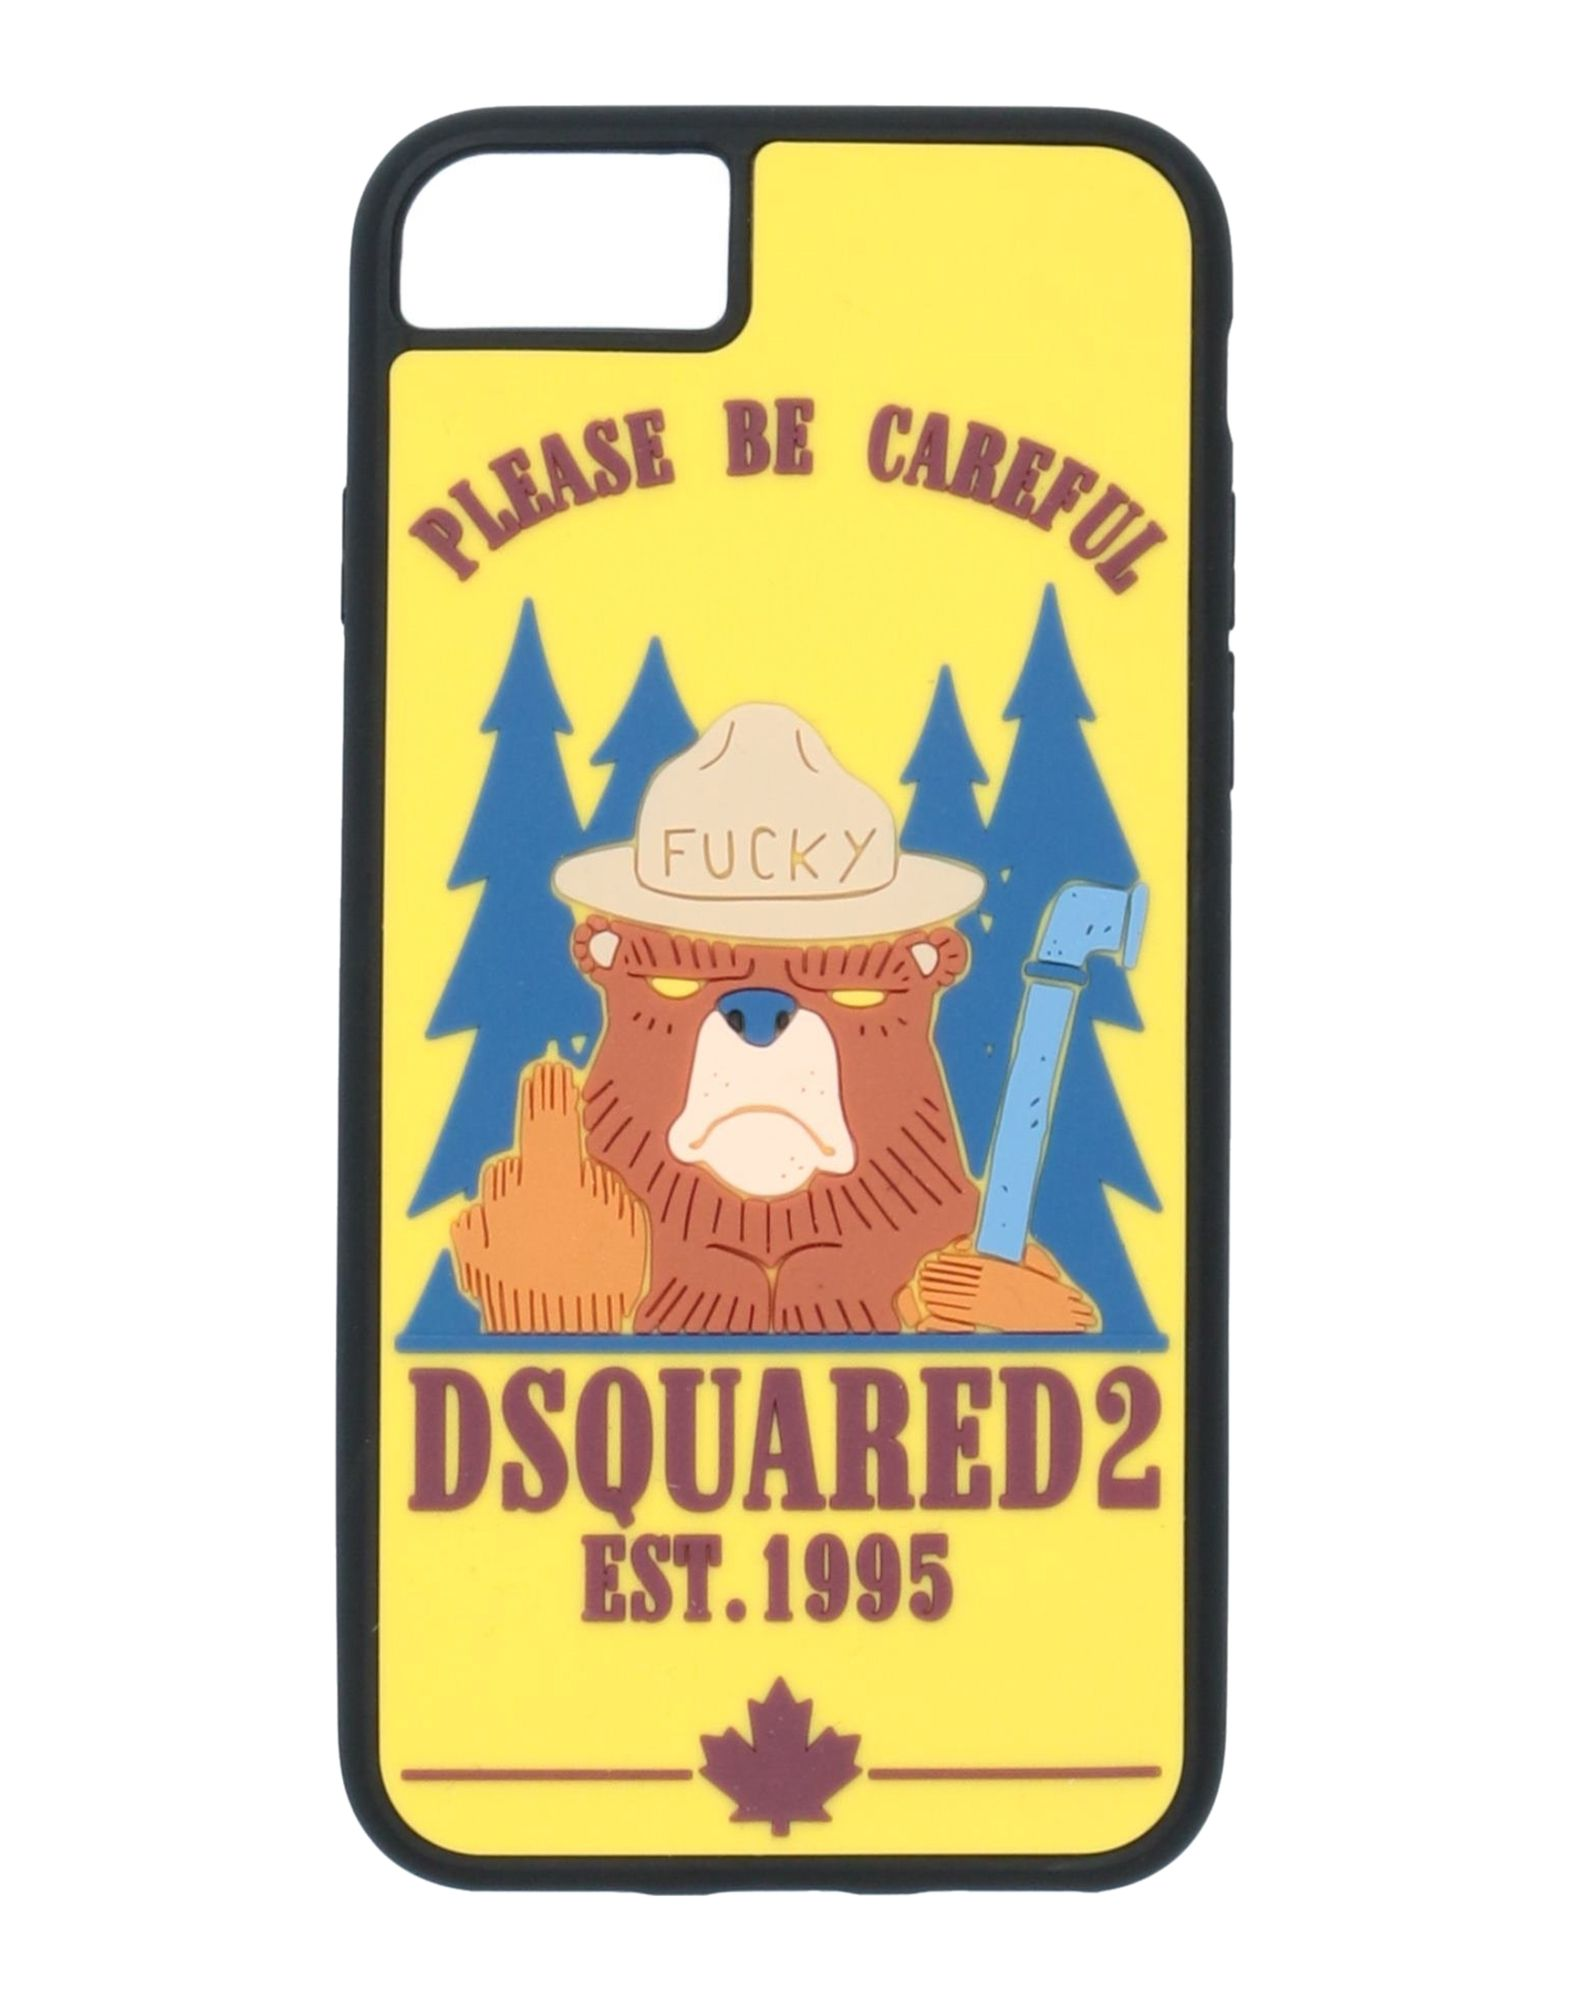 DSQUARED2 Covers & Cases - Item 58047061